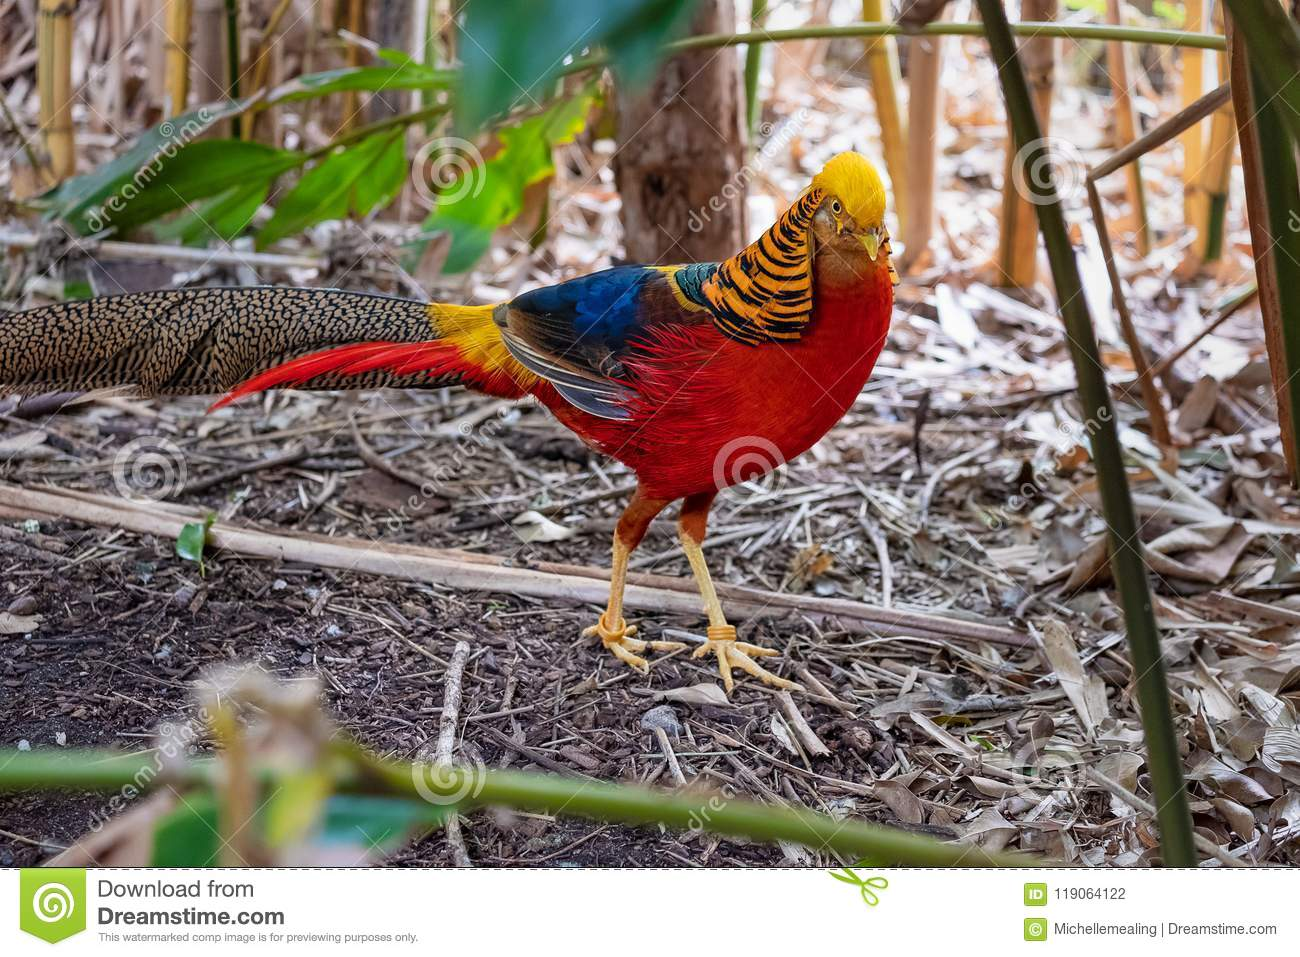 Brightly coloured male Golden Pheasant